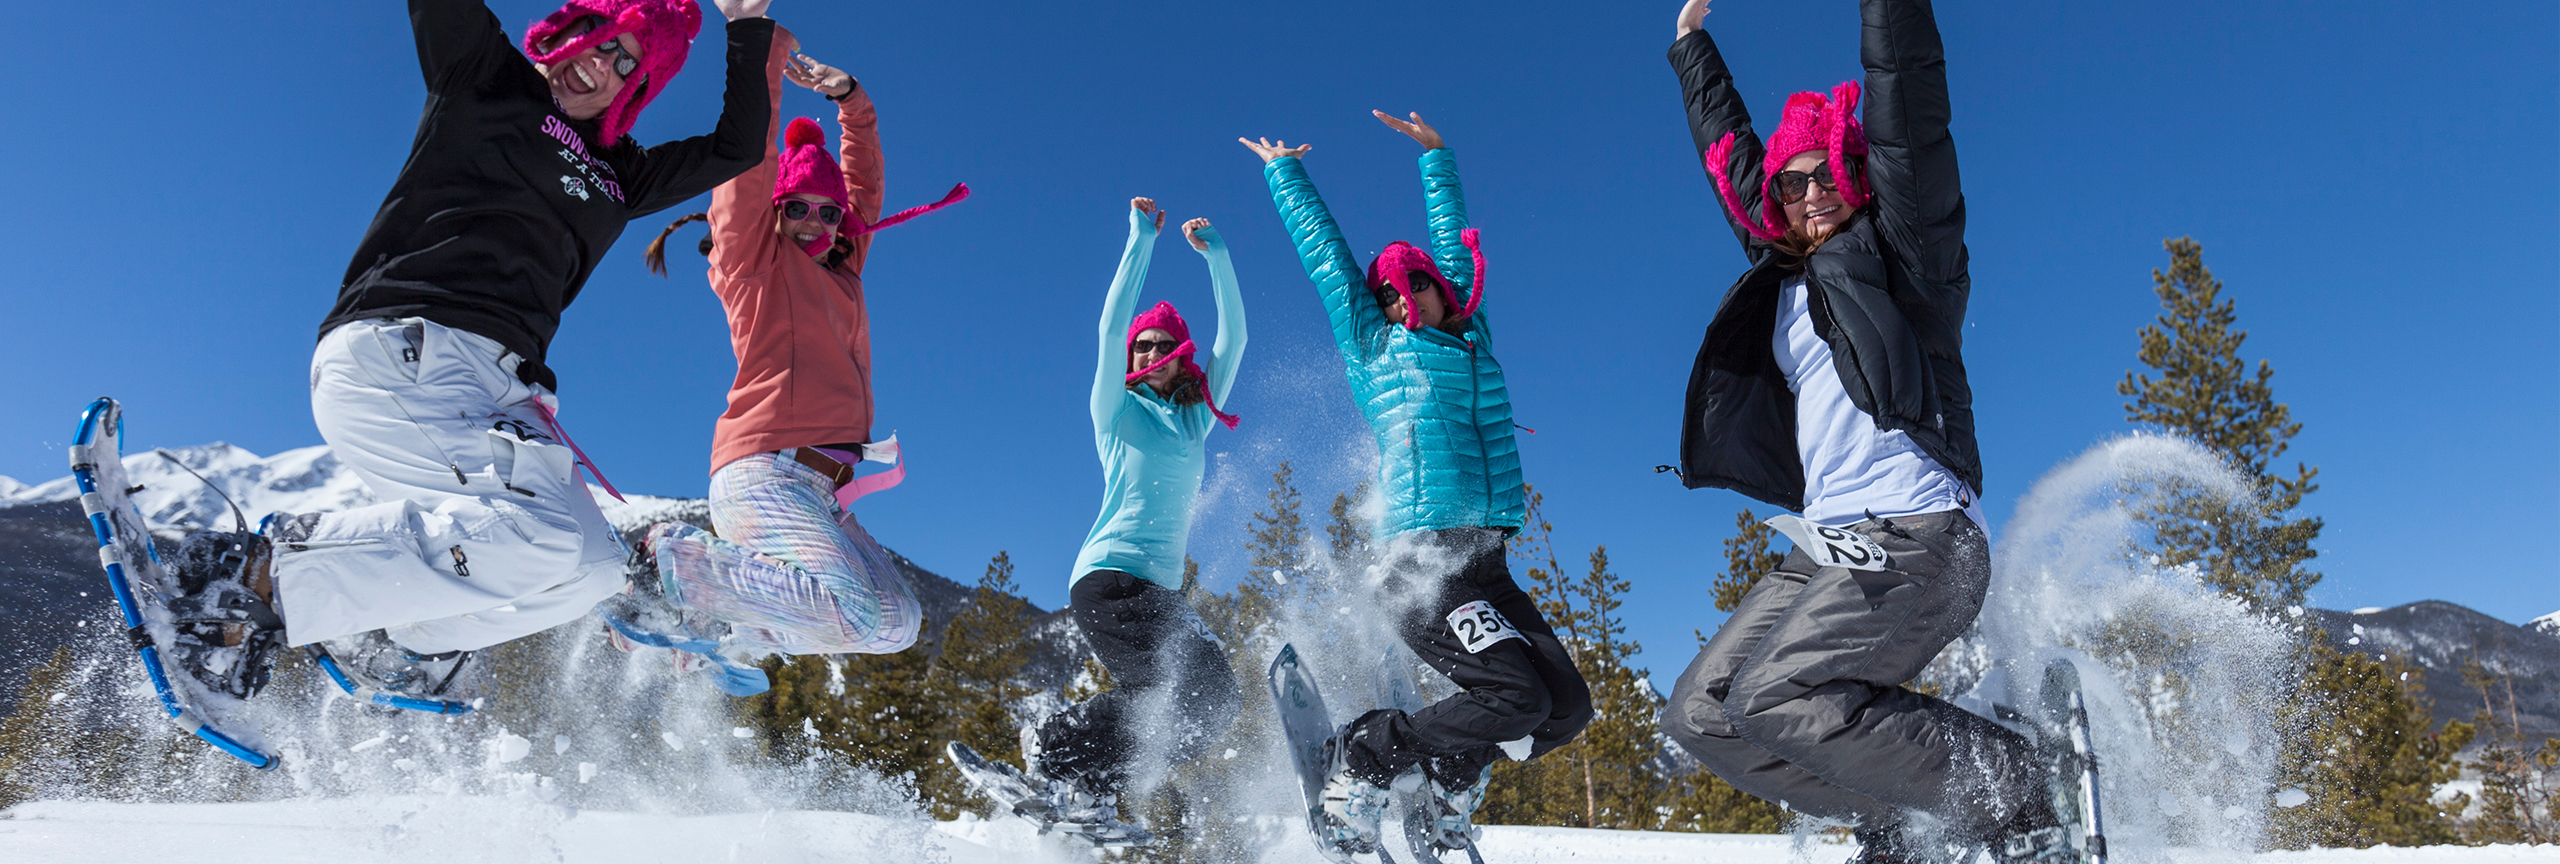 Group of women wearing snowshoes and pinks hats jumping in the air in snow